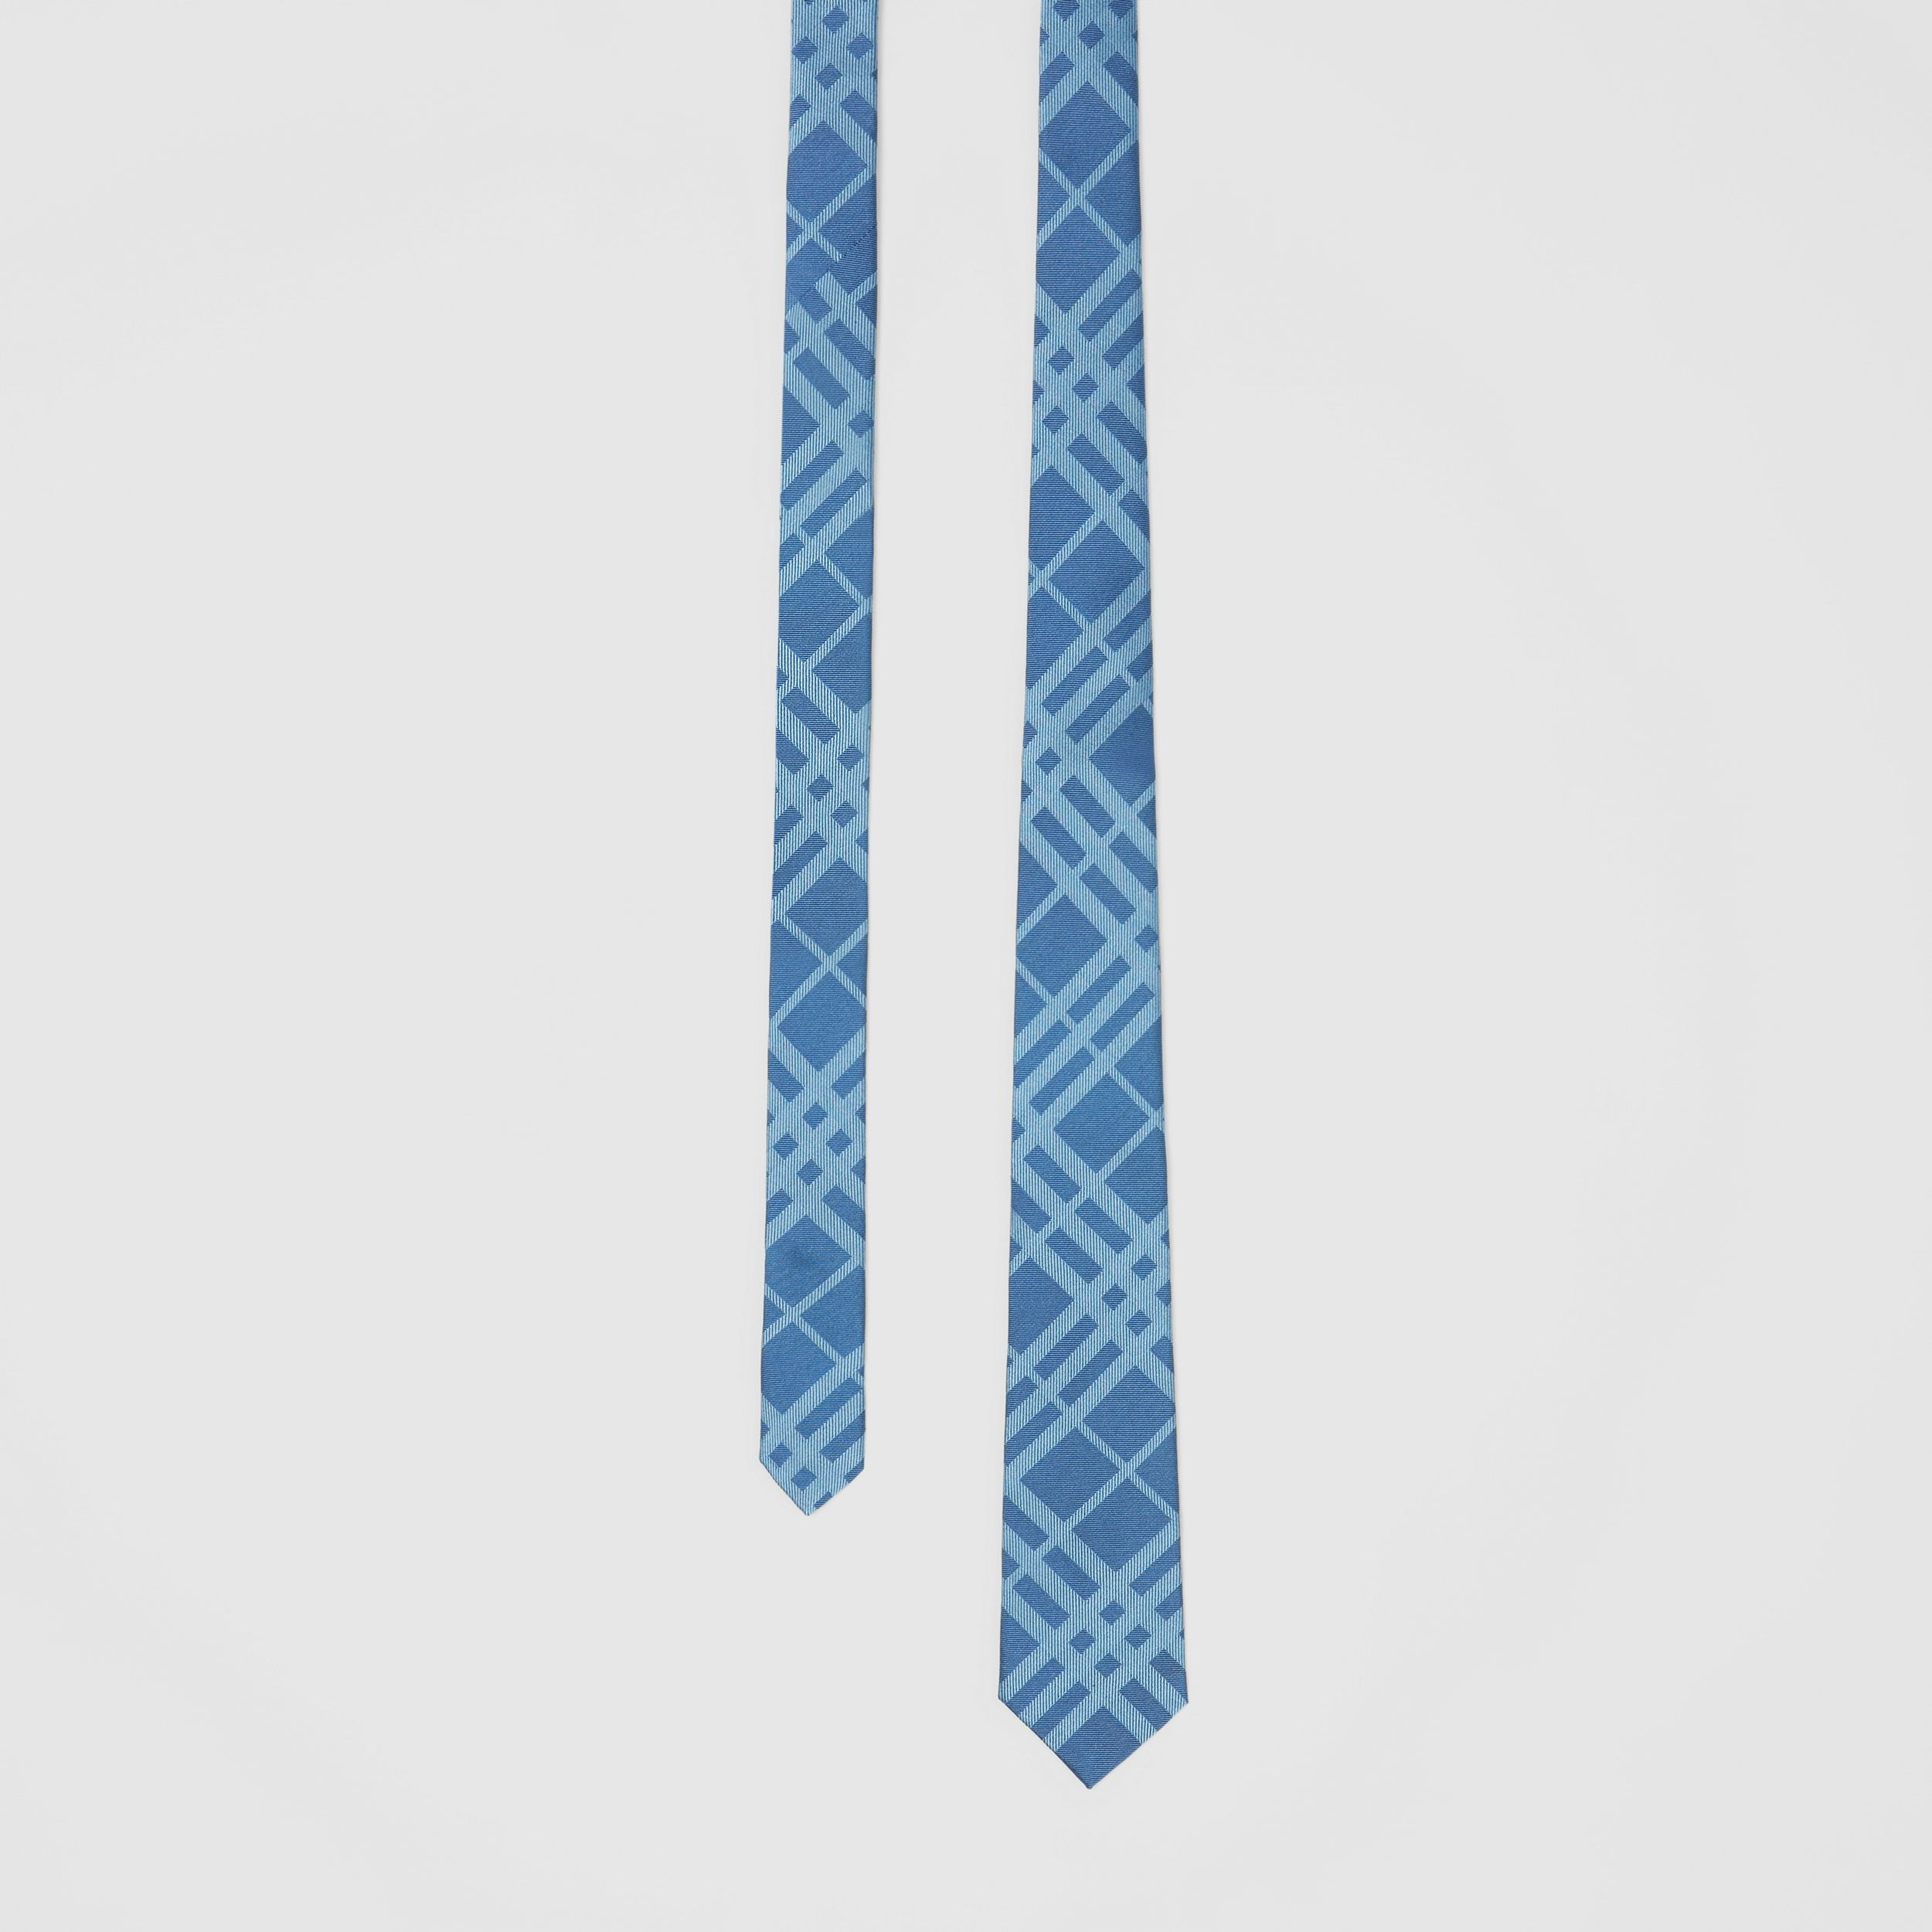 Classic Cut Check Silk Jacquard Tie in Blue Topaz - Men | Burberry - 1